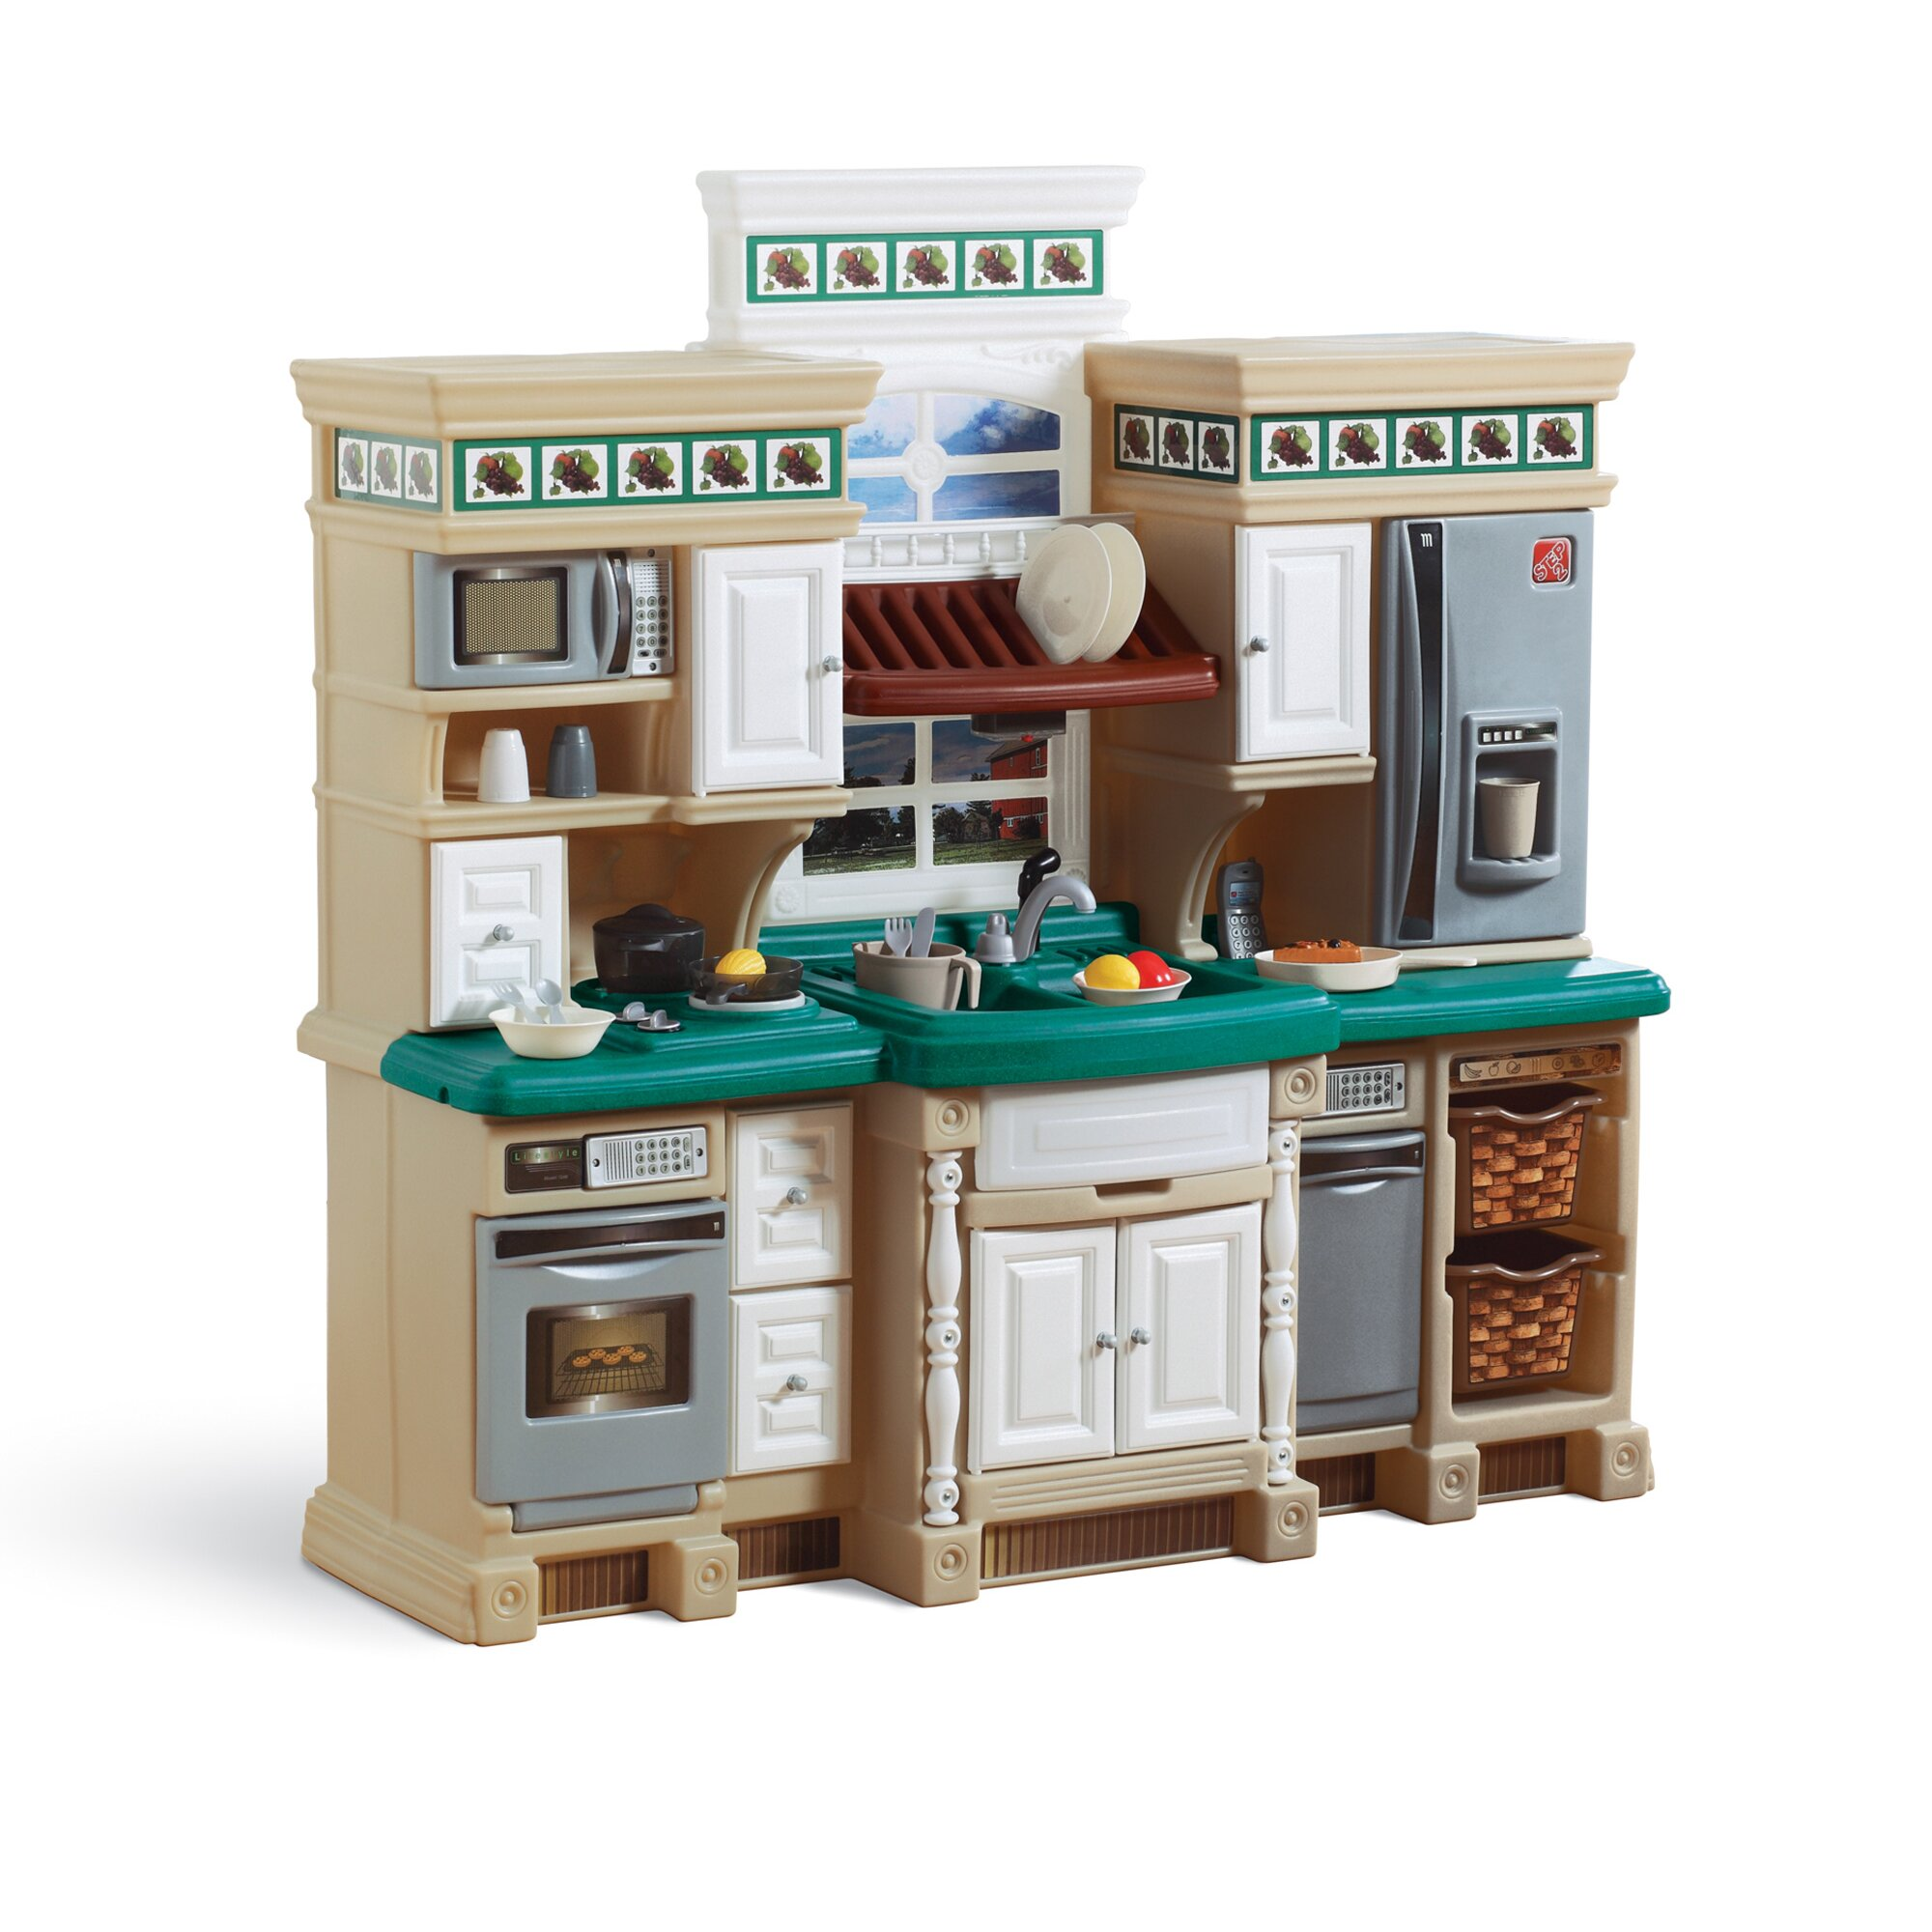 Kitchen Set Step2 Lifestyle Deluxe Kitchen Set Reviews Wayfair